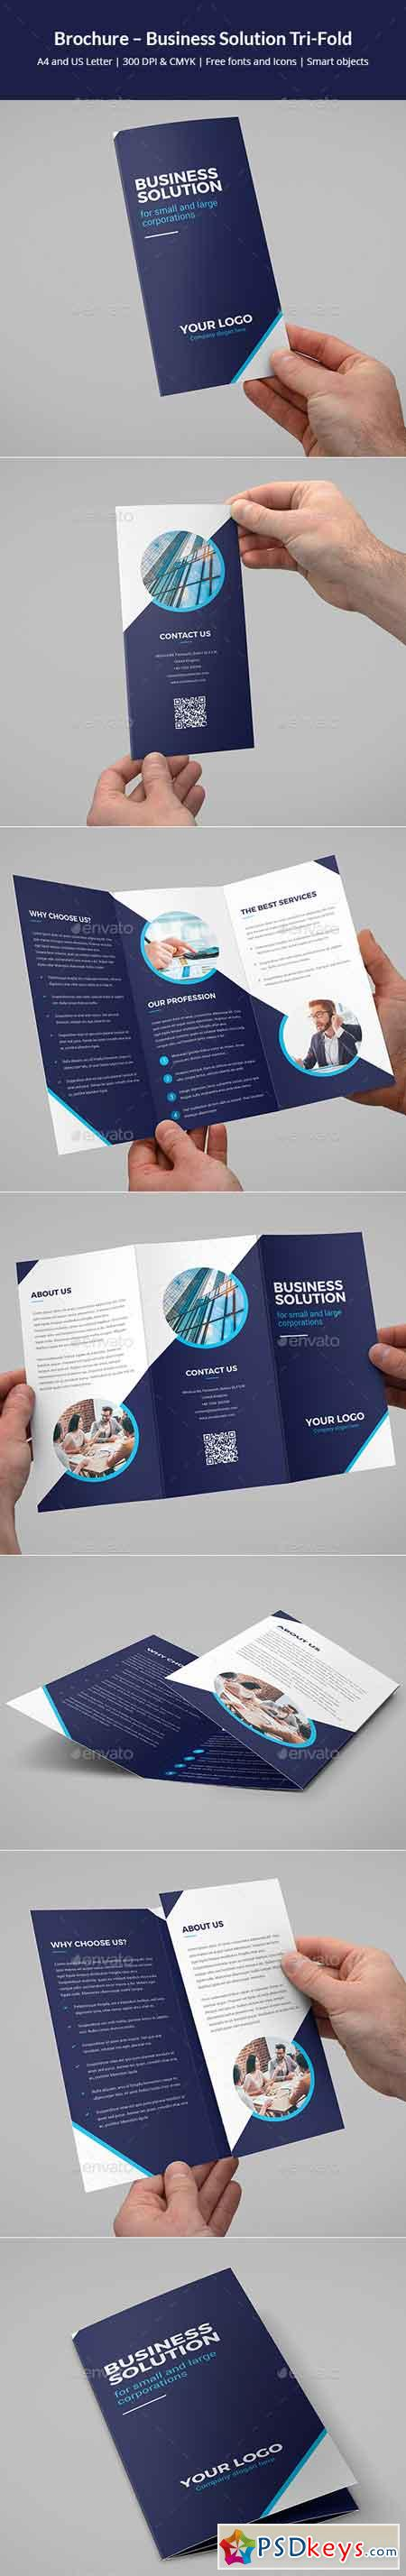 Brochure  Business Solution TriFold   Free Download